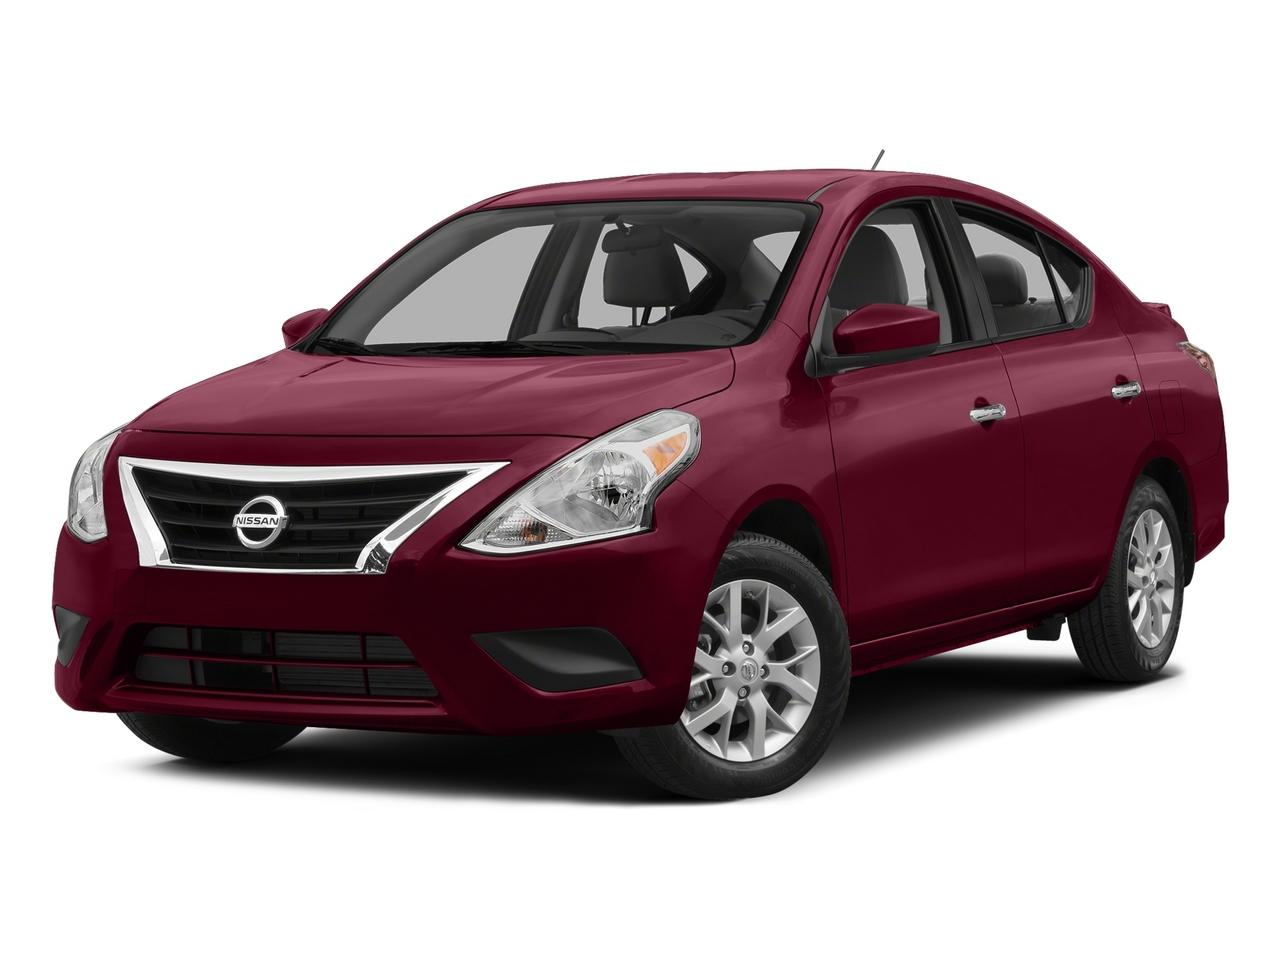 2015 Nissan Versa Vehicle Photo in Owensboro, KY 42303